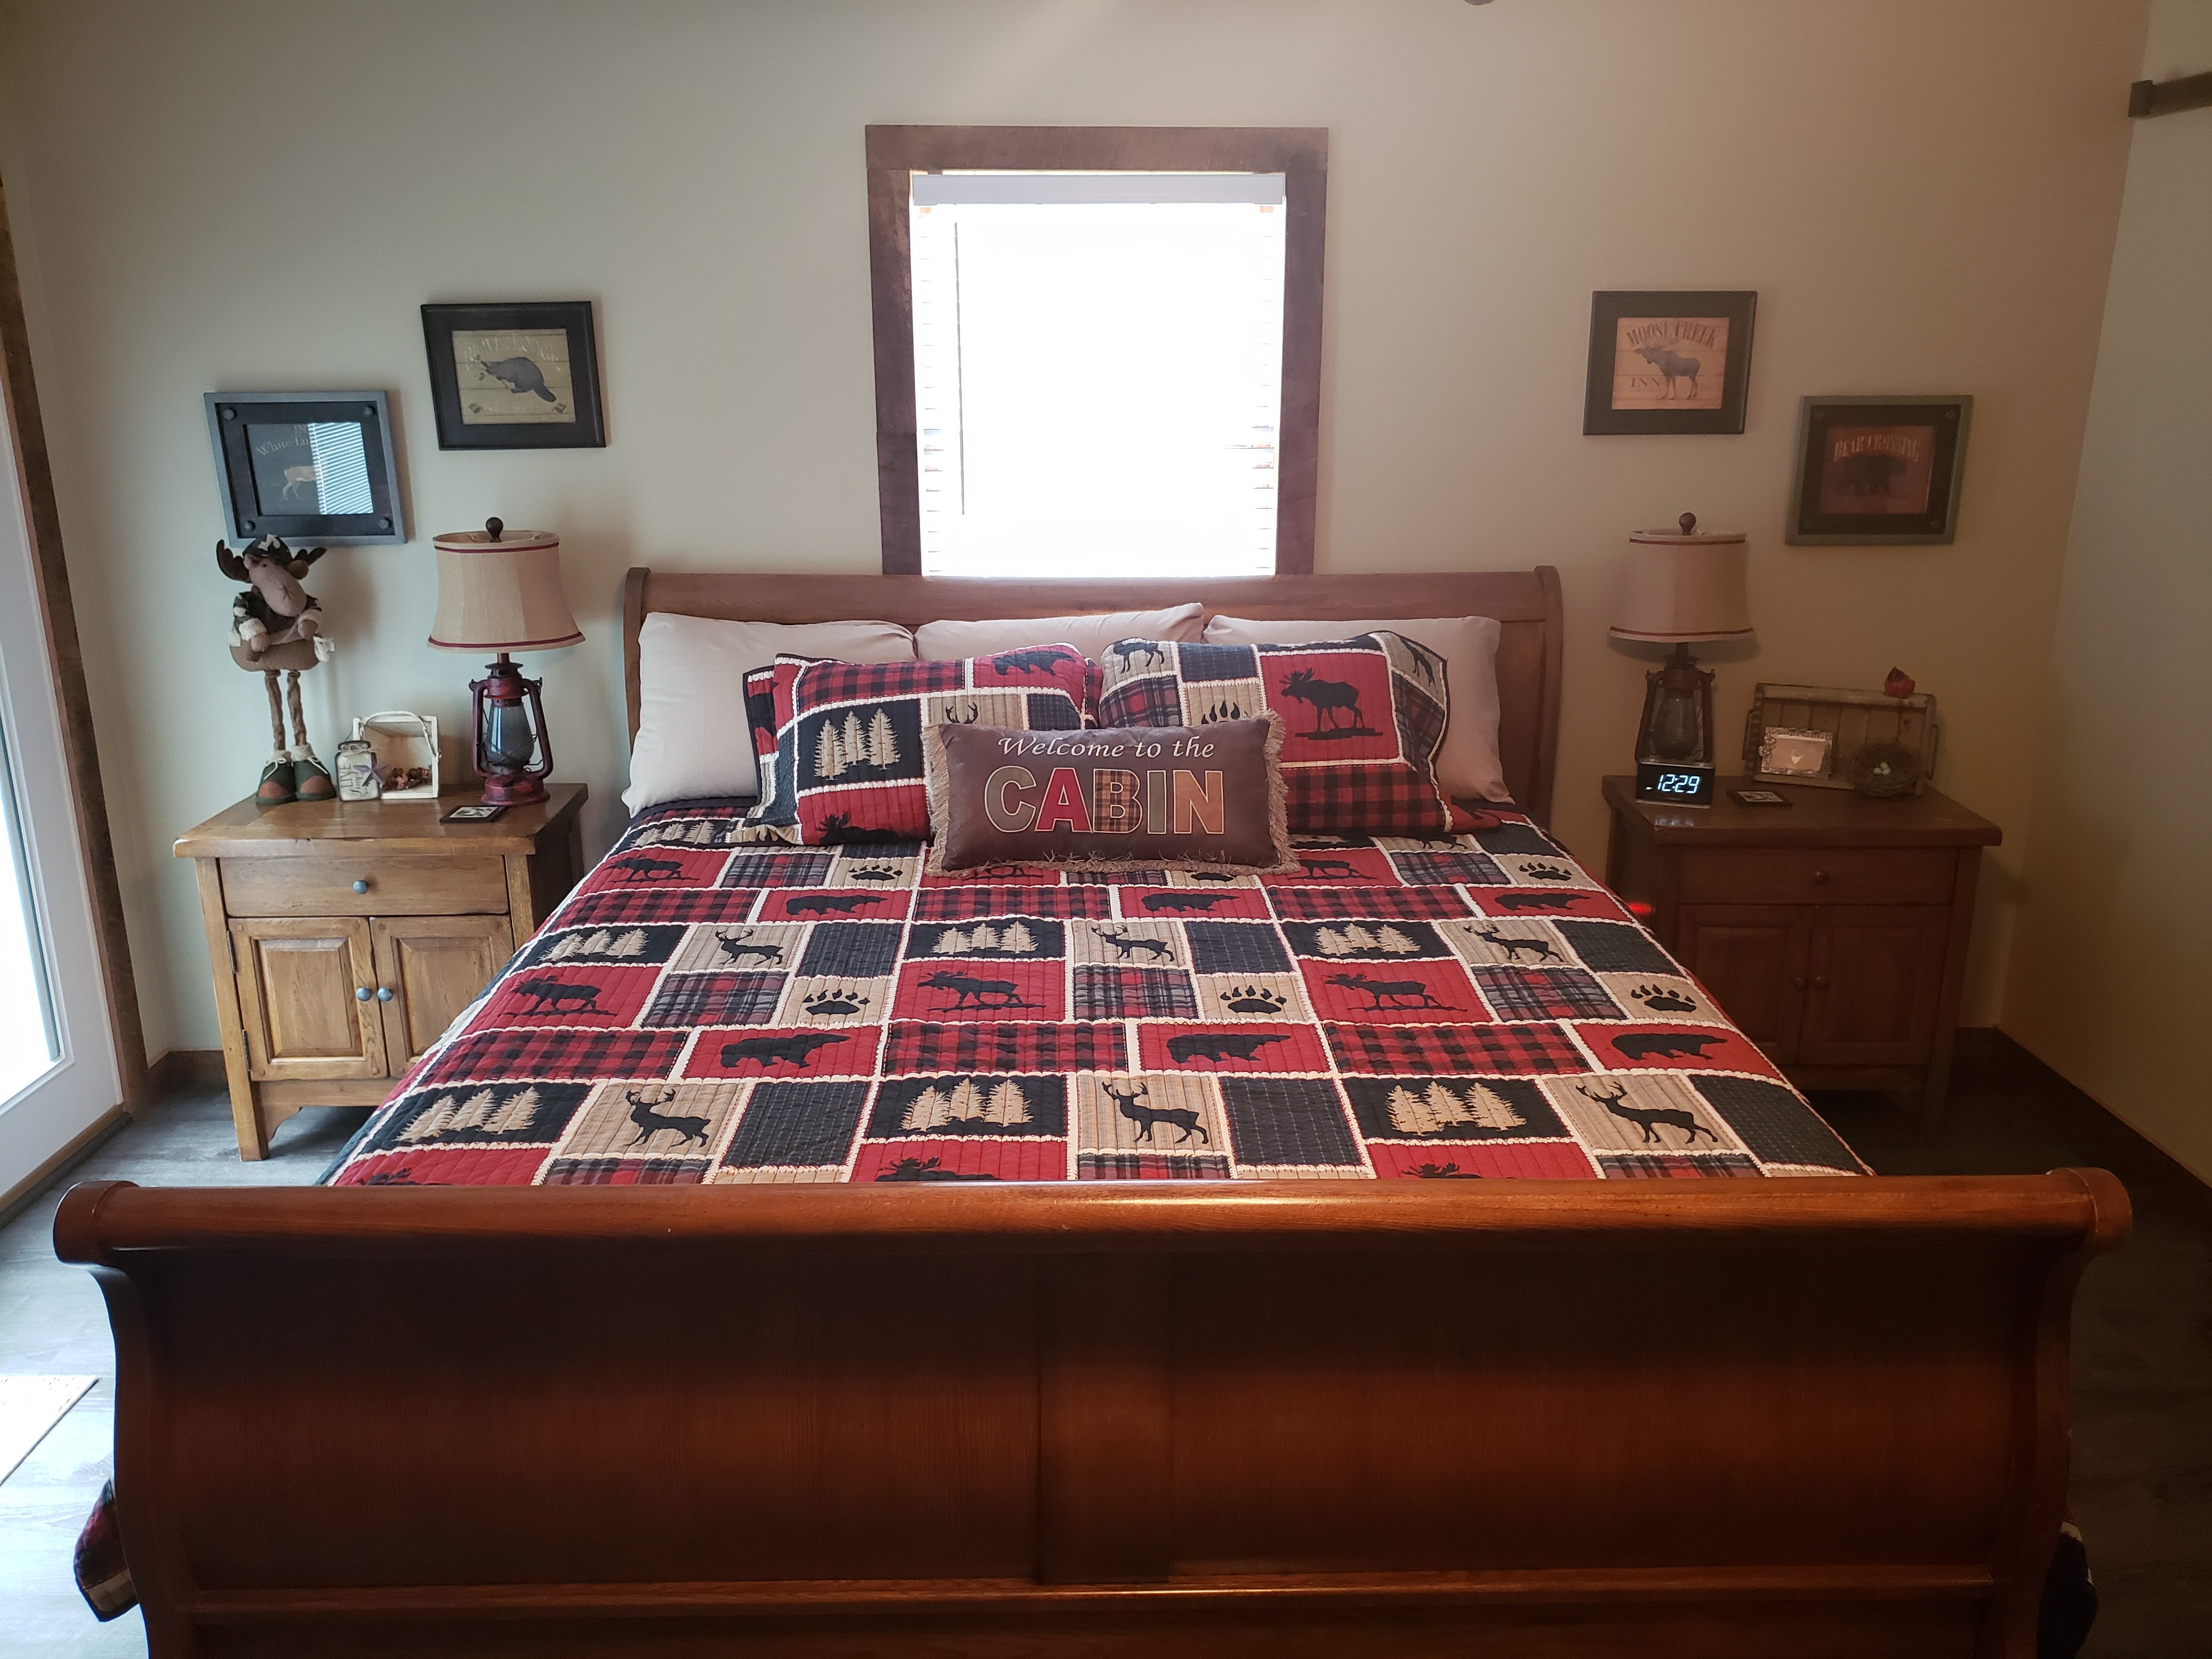 King size bed with colorful quilt